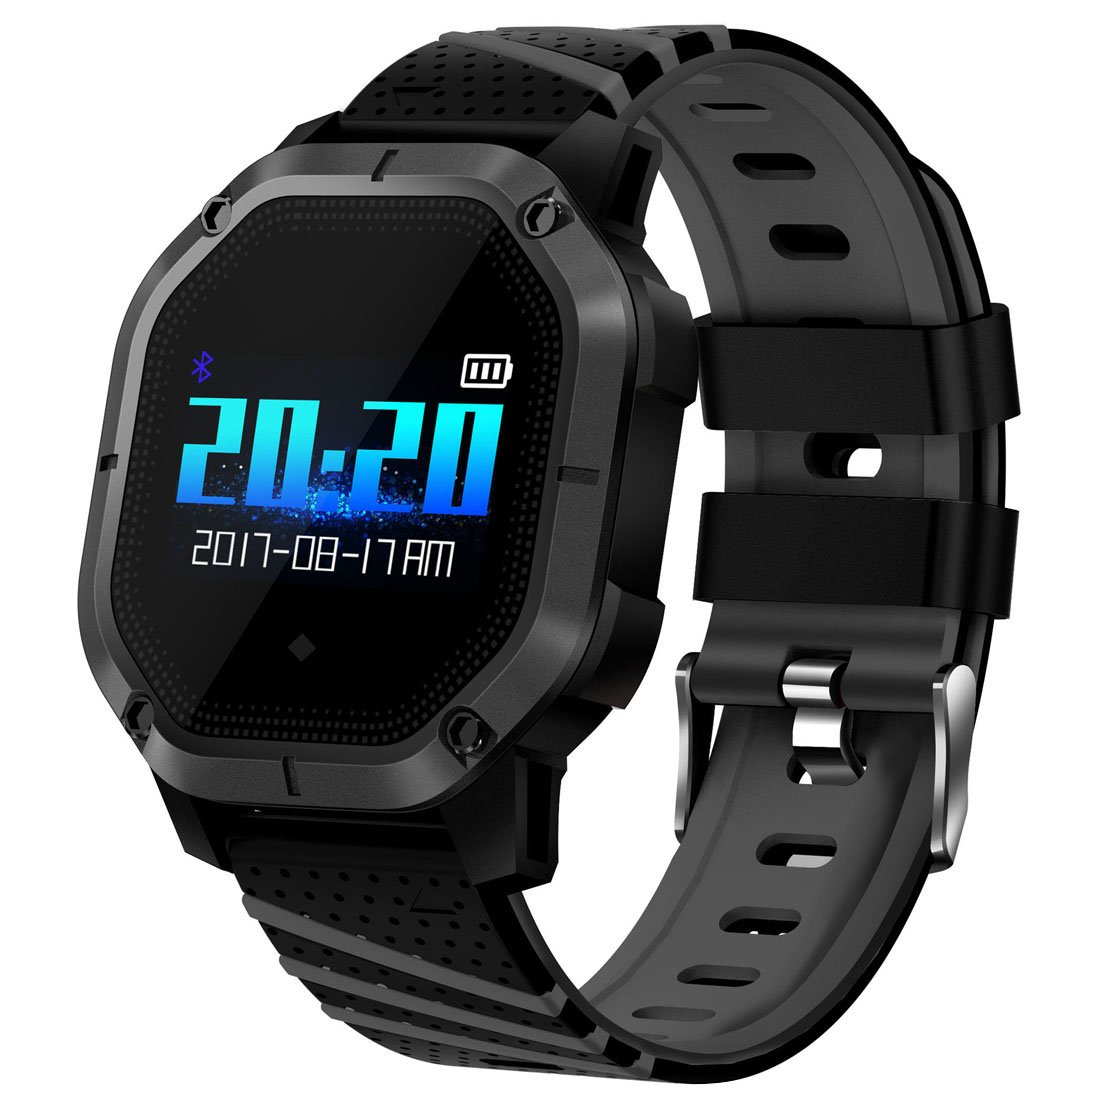 New Swimming/Cycling Fitness Tracker, Blood Pressure / SpO2 / Heart Rate/Sleep Health Watch Compatible with iPhone XS XR and Android Samsung Phones, Black